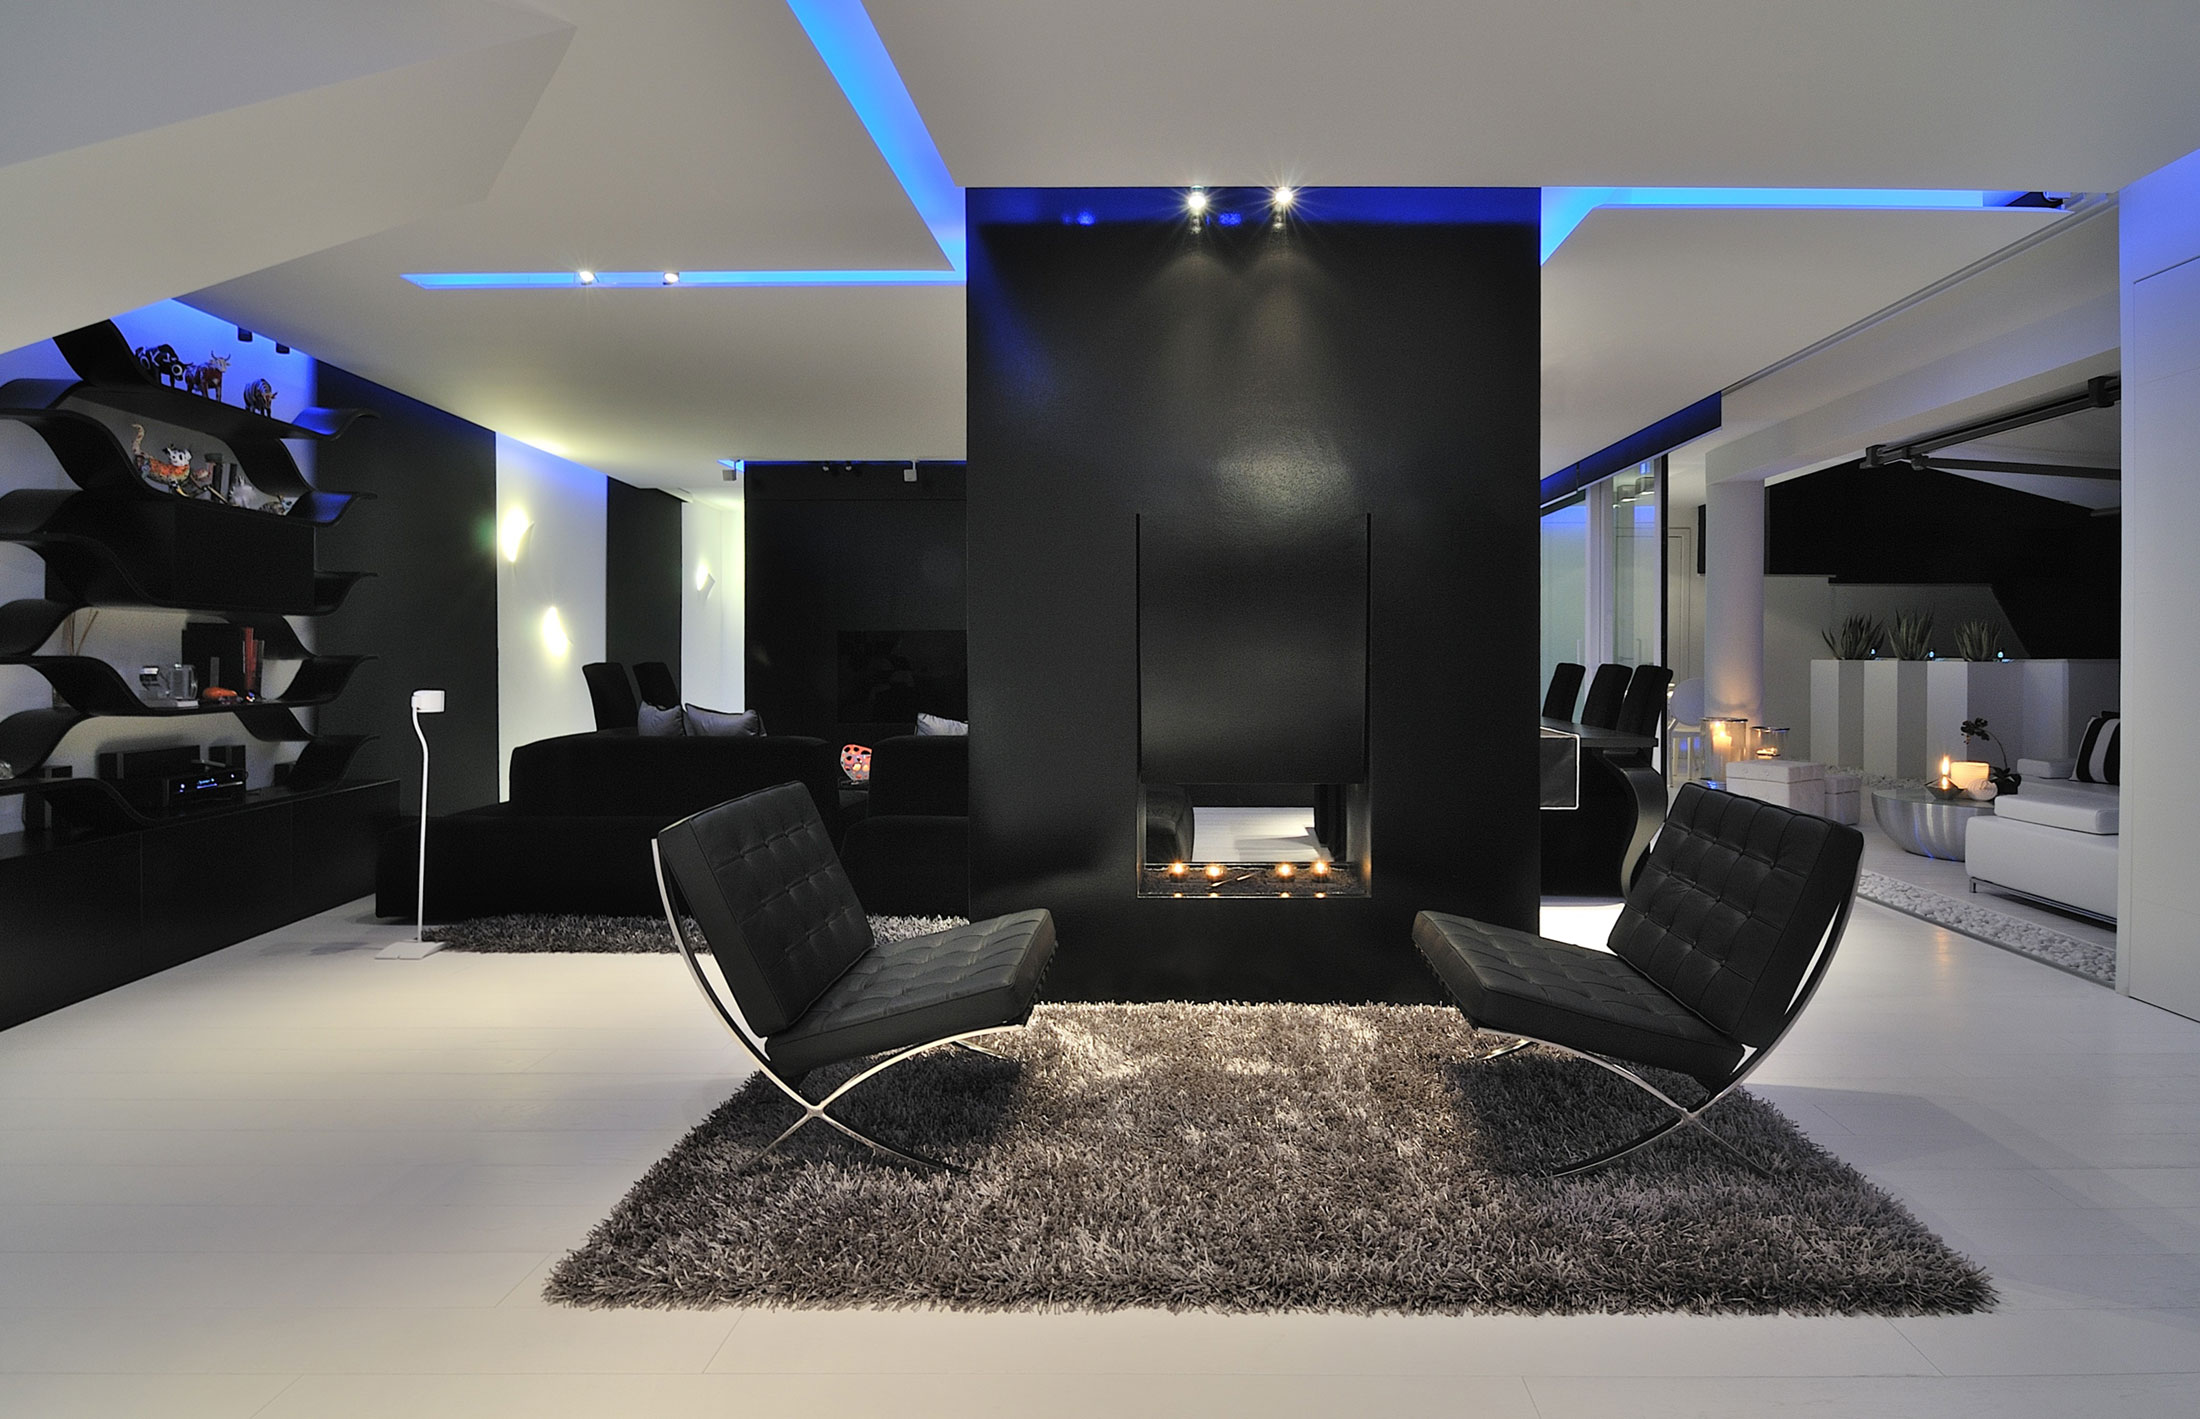 blue lit residence with black and white flair. Black Bedroom Furniture Sets. Home Design Ideas